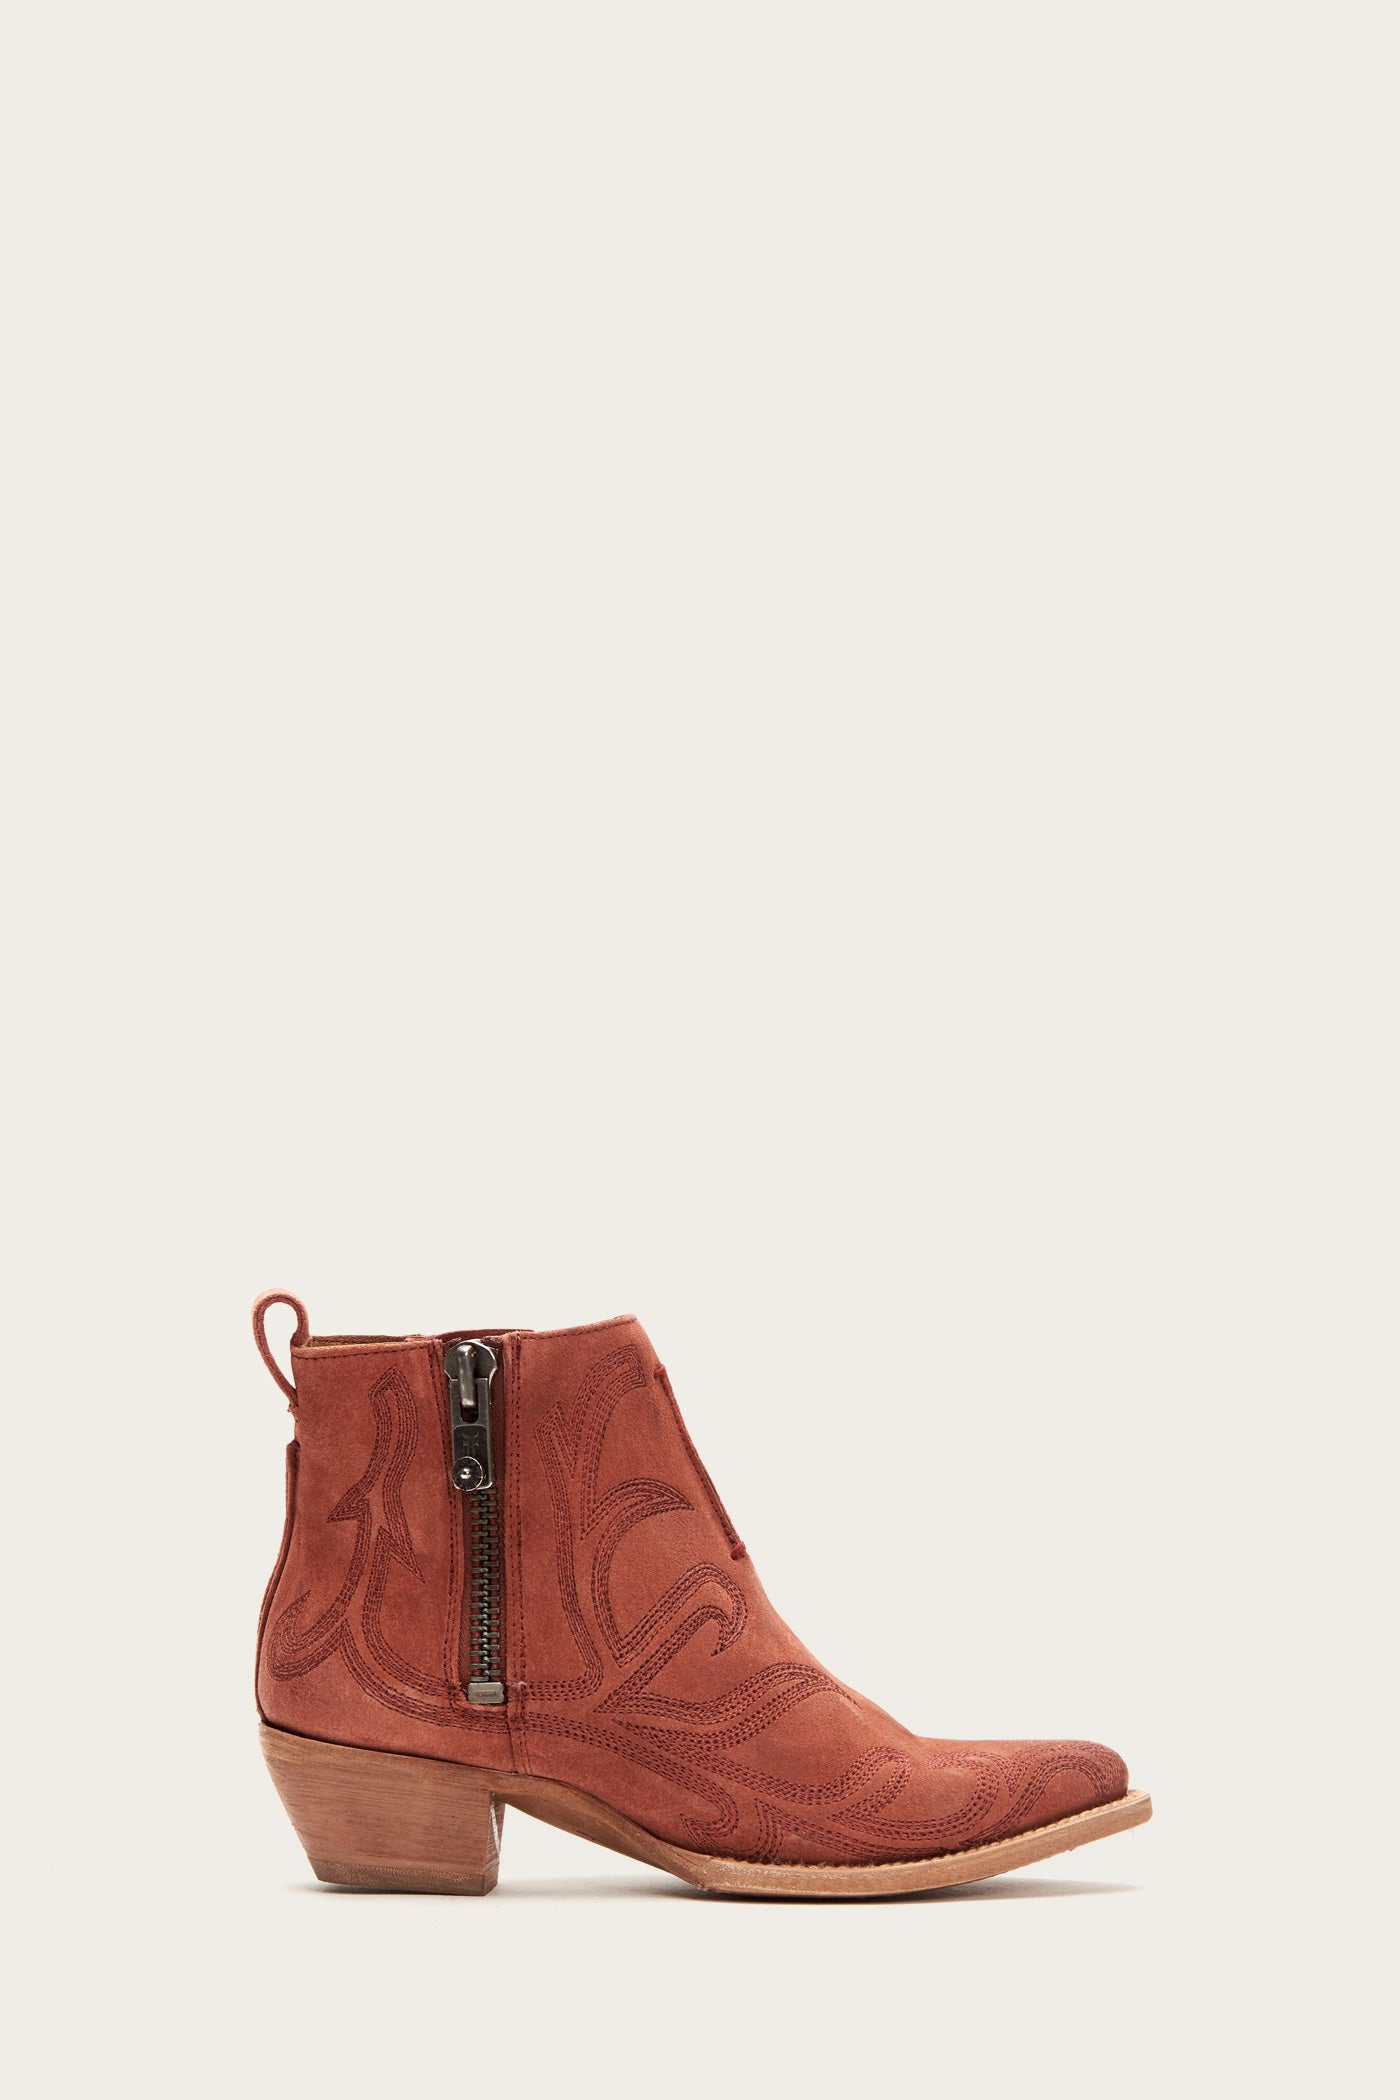 1210f515001 Leather Boots, Shoes & Bags | Clothing | FRYE Since 1863